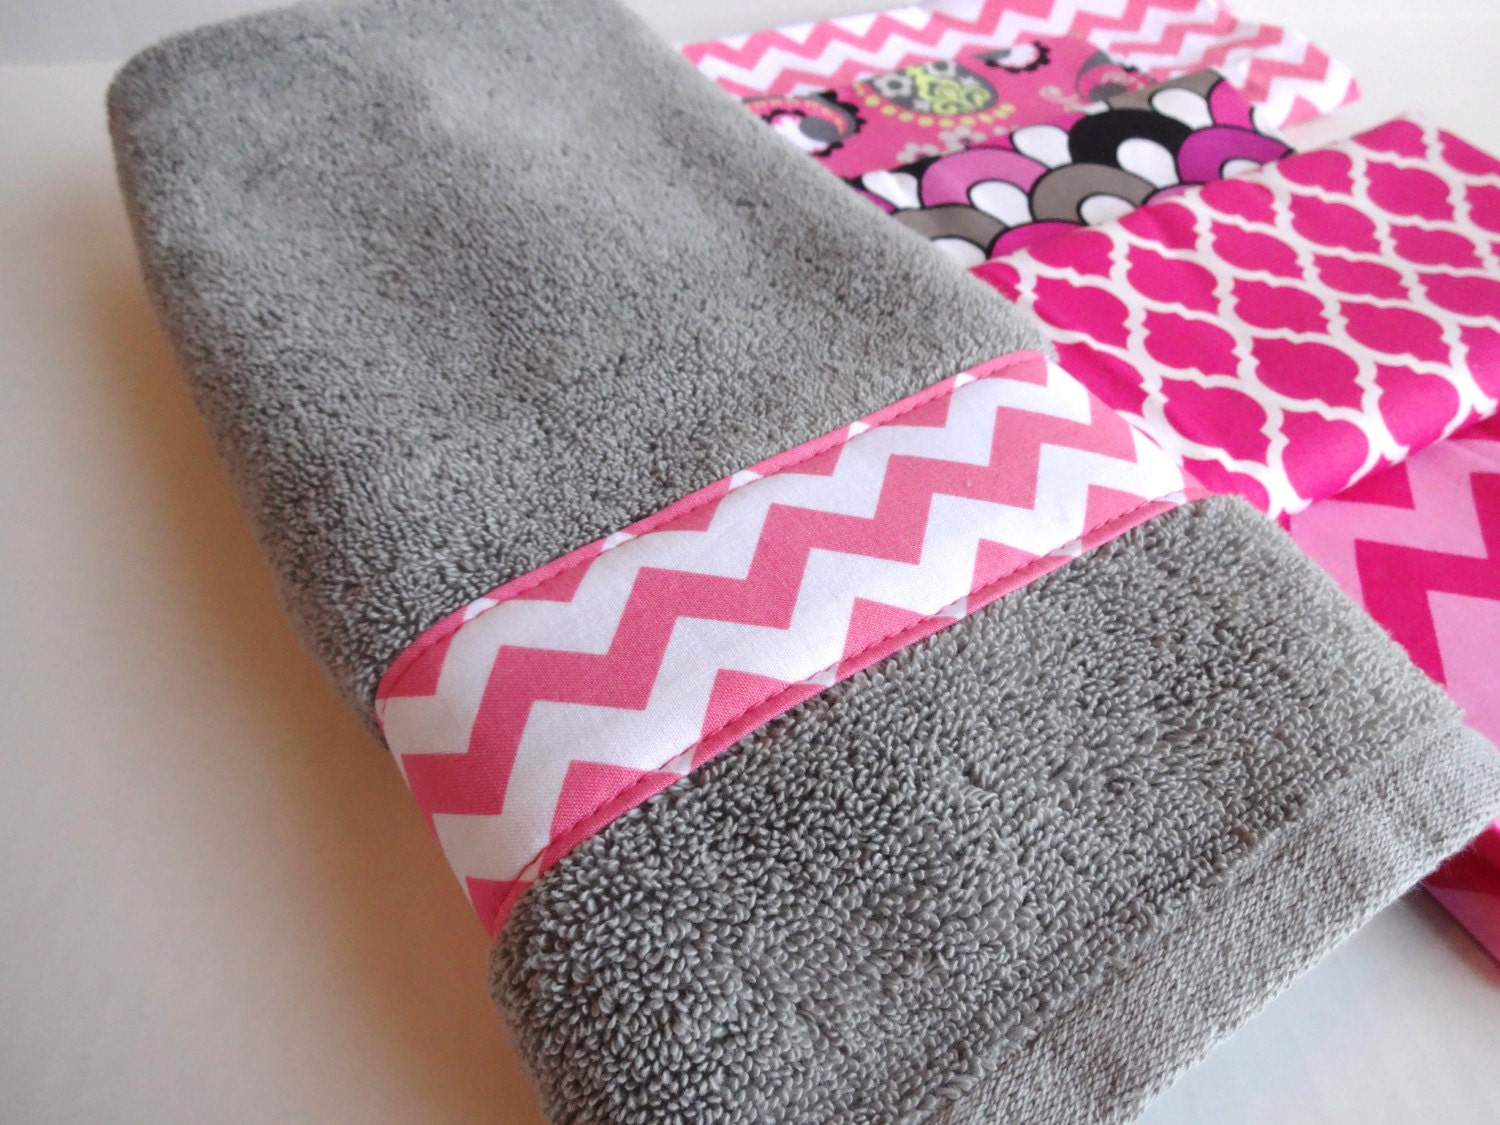 Pink and grey towels hand towels towel sets bath towels for Pink and gray bathroom sets